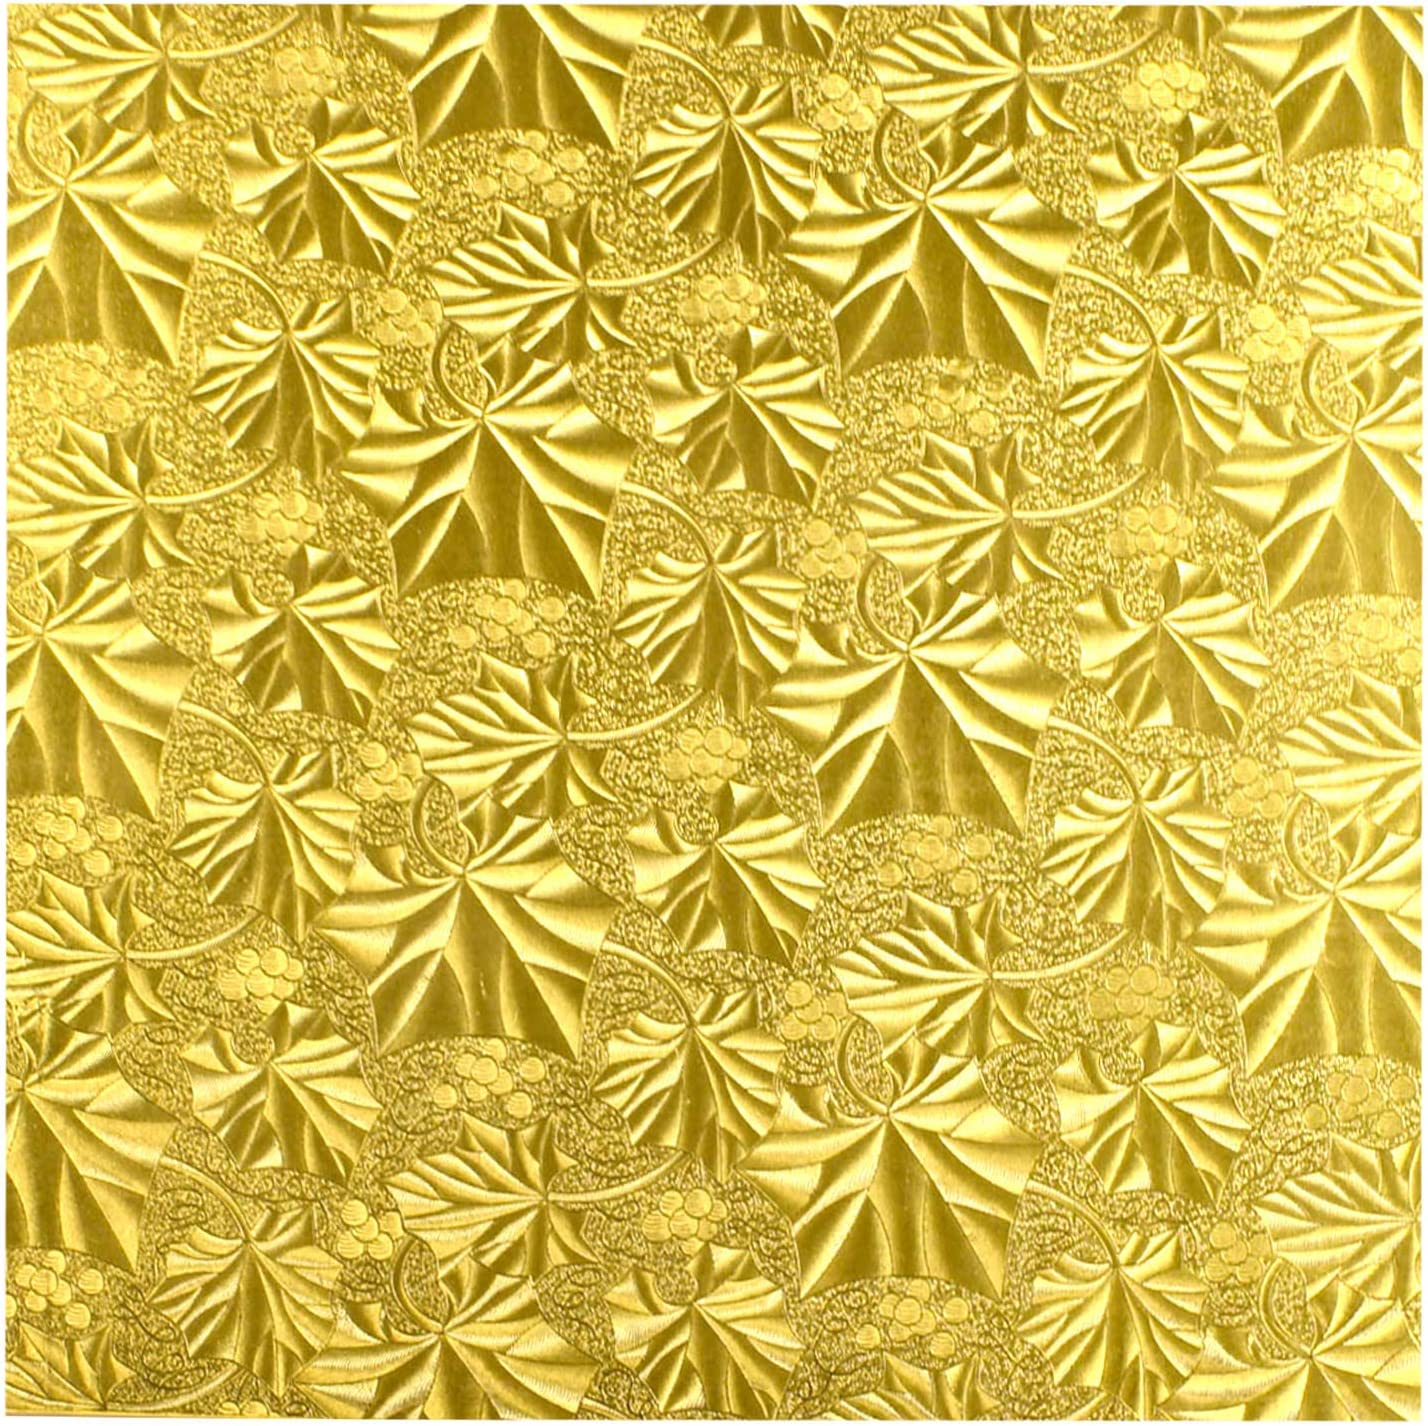 Cake Fold-under Board Square Department store Gold 1 x Thick - Indianapolis Mall Pack 2